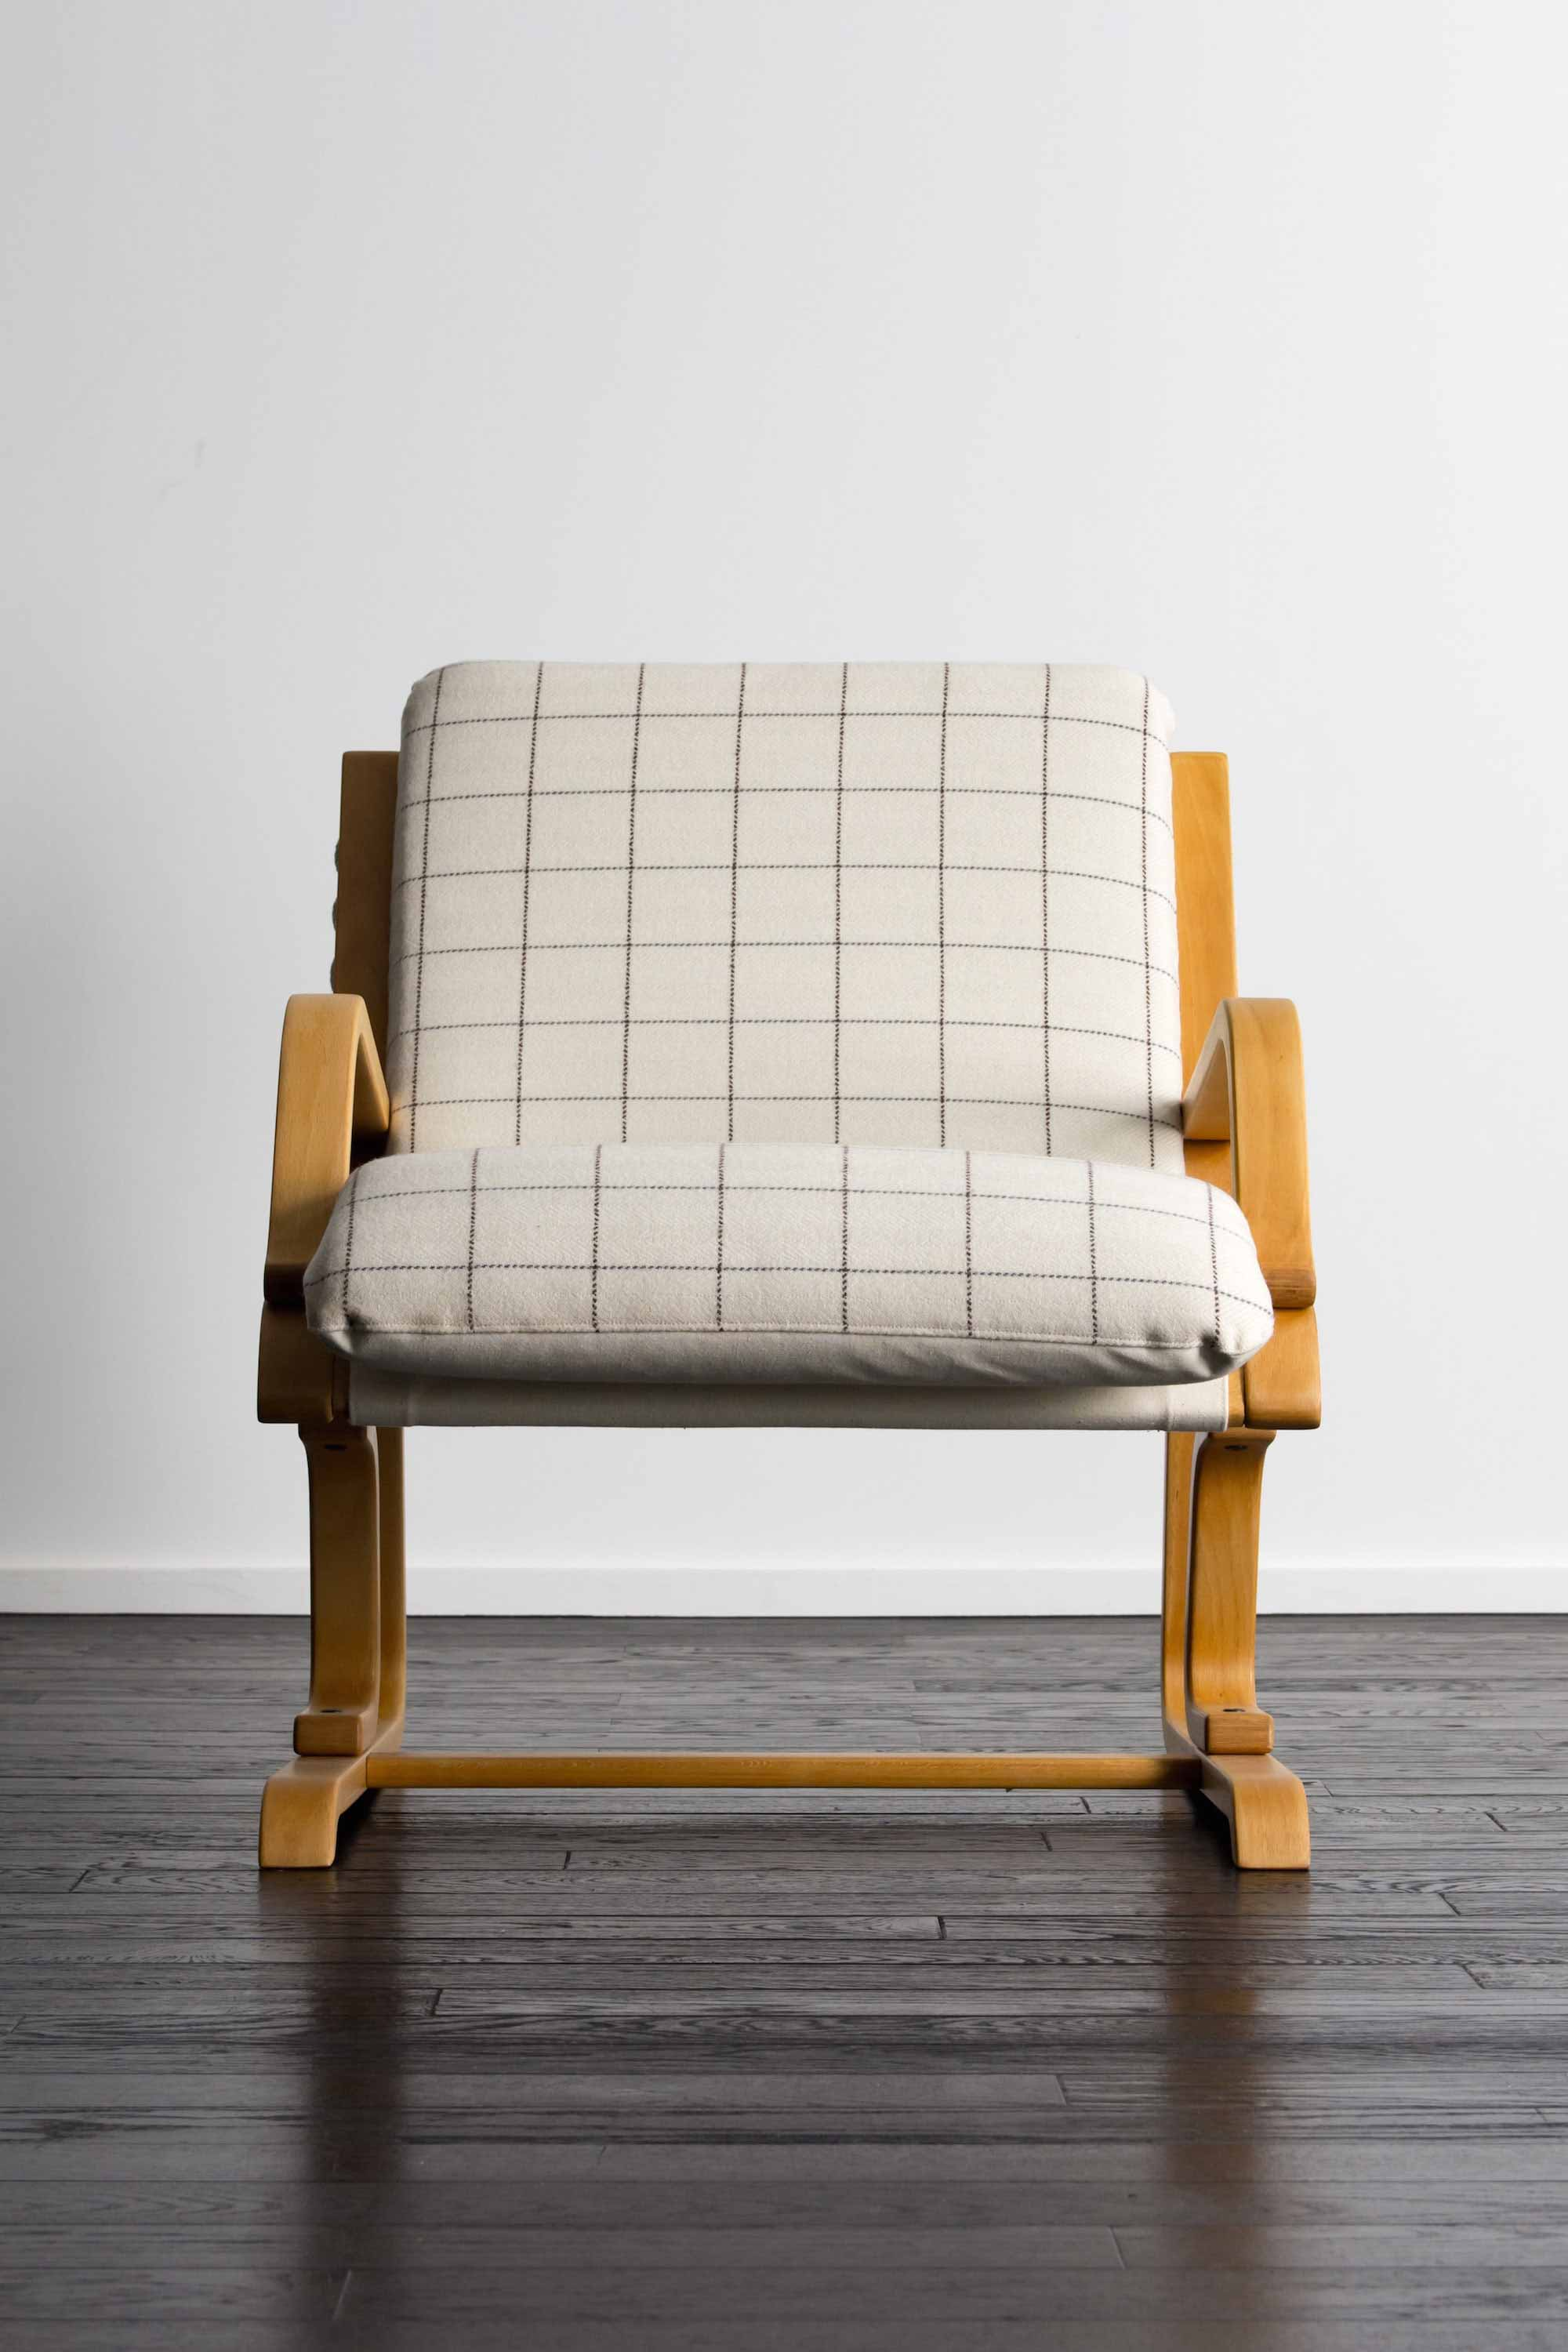 Easy Chair designed by Ingmar Relling